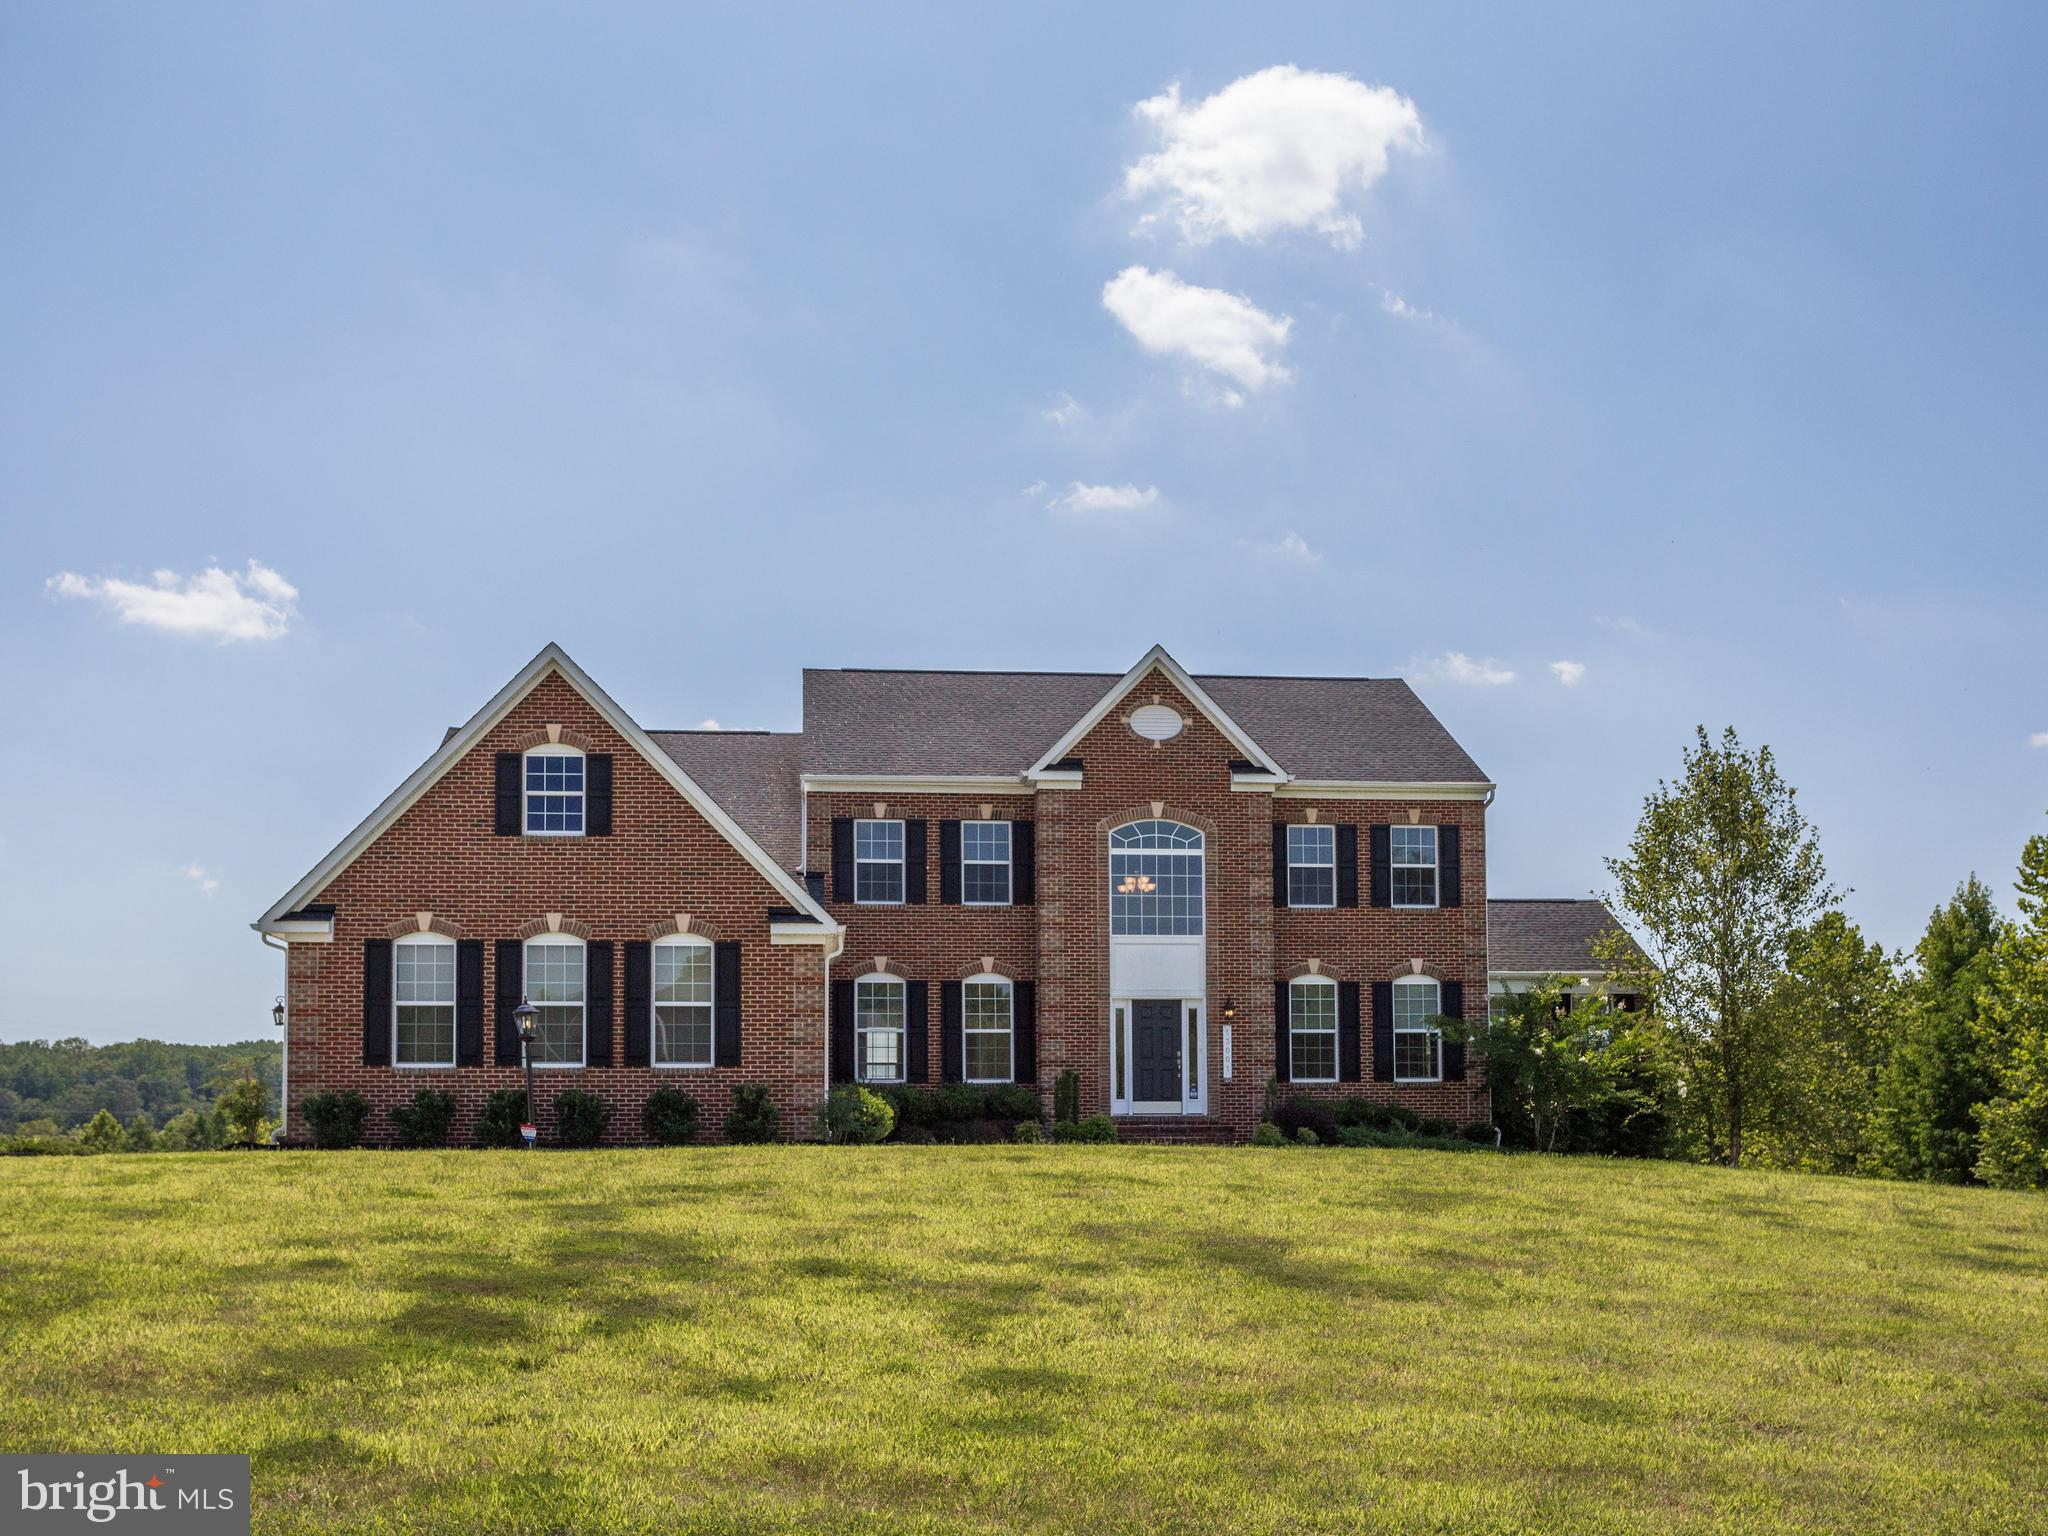 13001 CONTEE MANOR ROAD, BOWIE, MD 20721